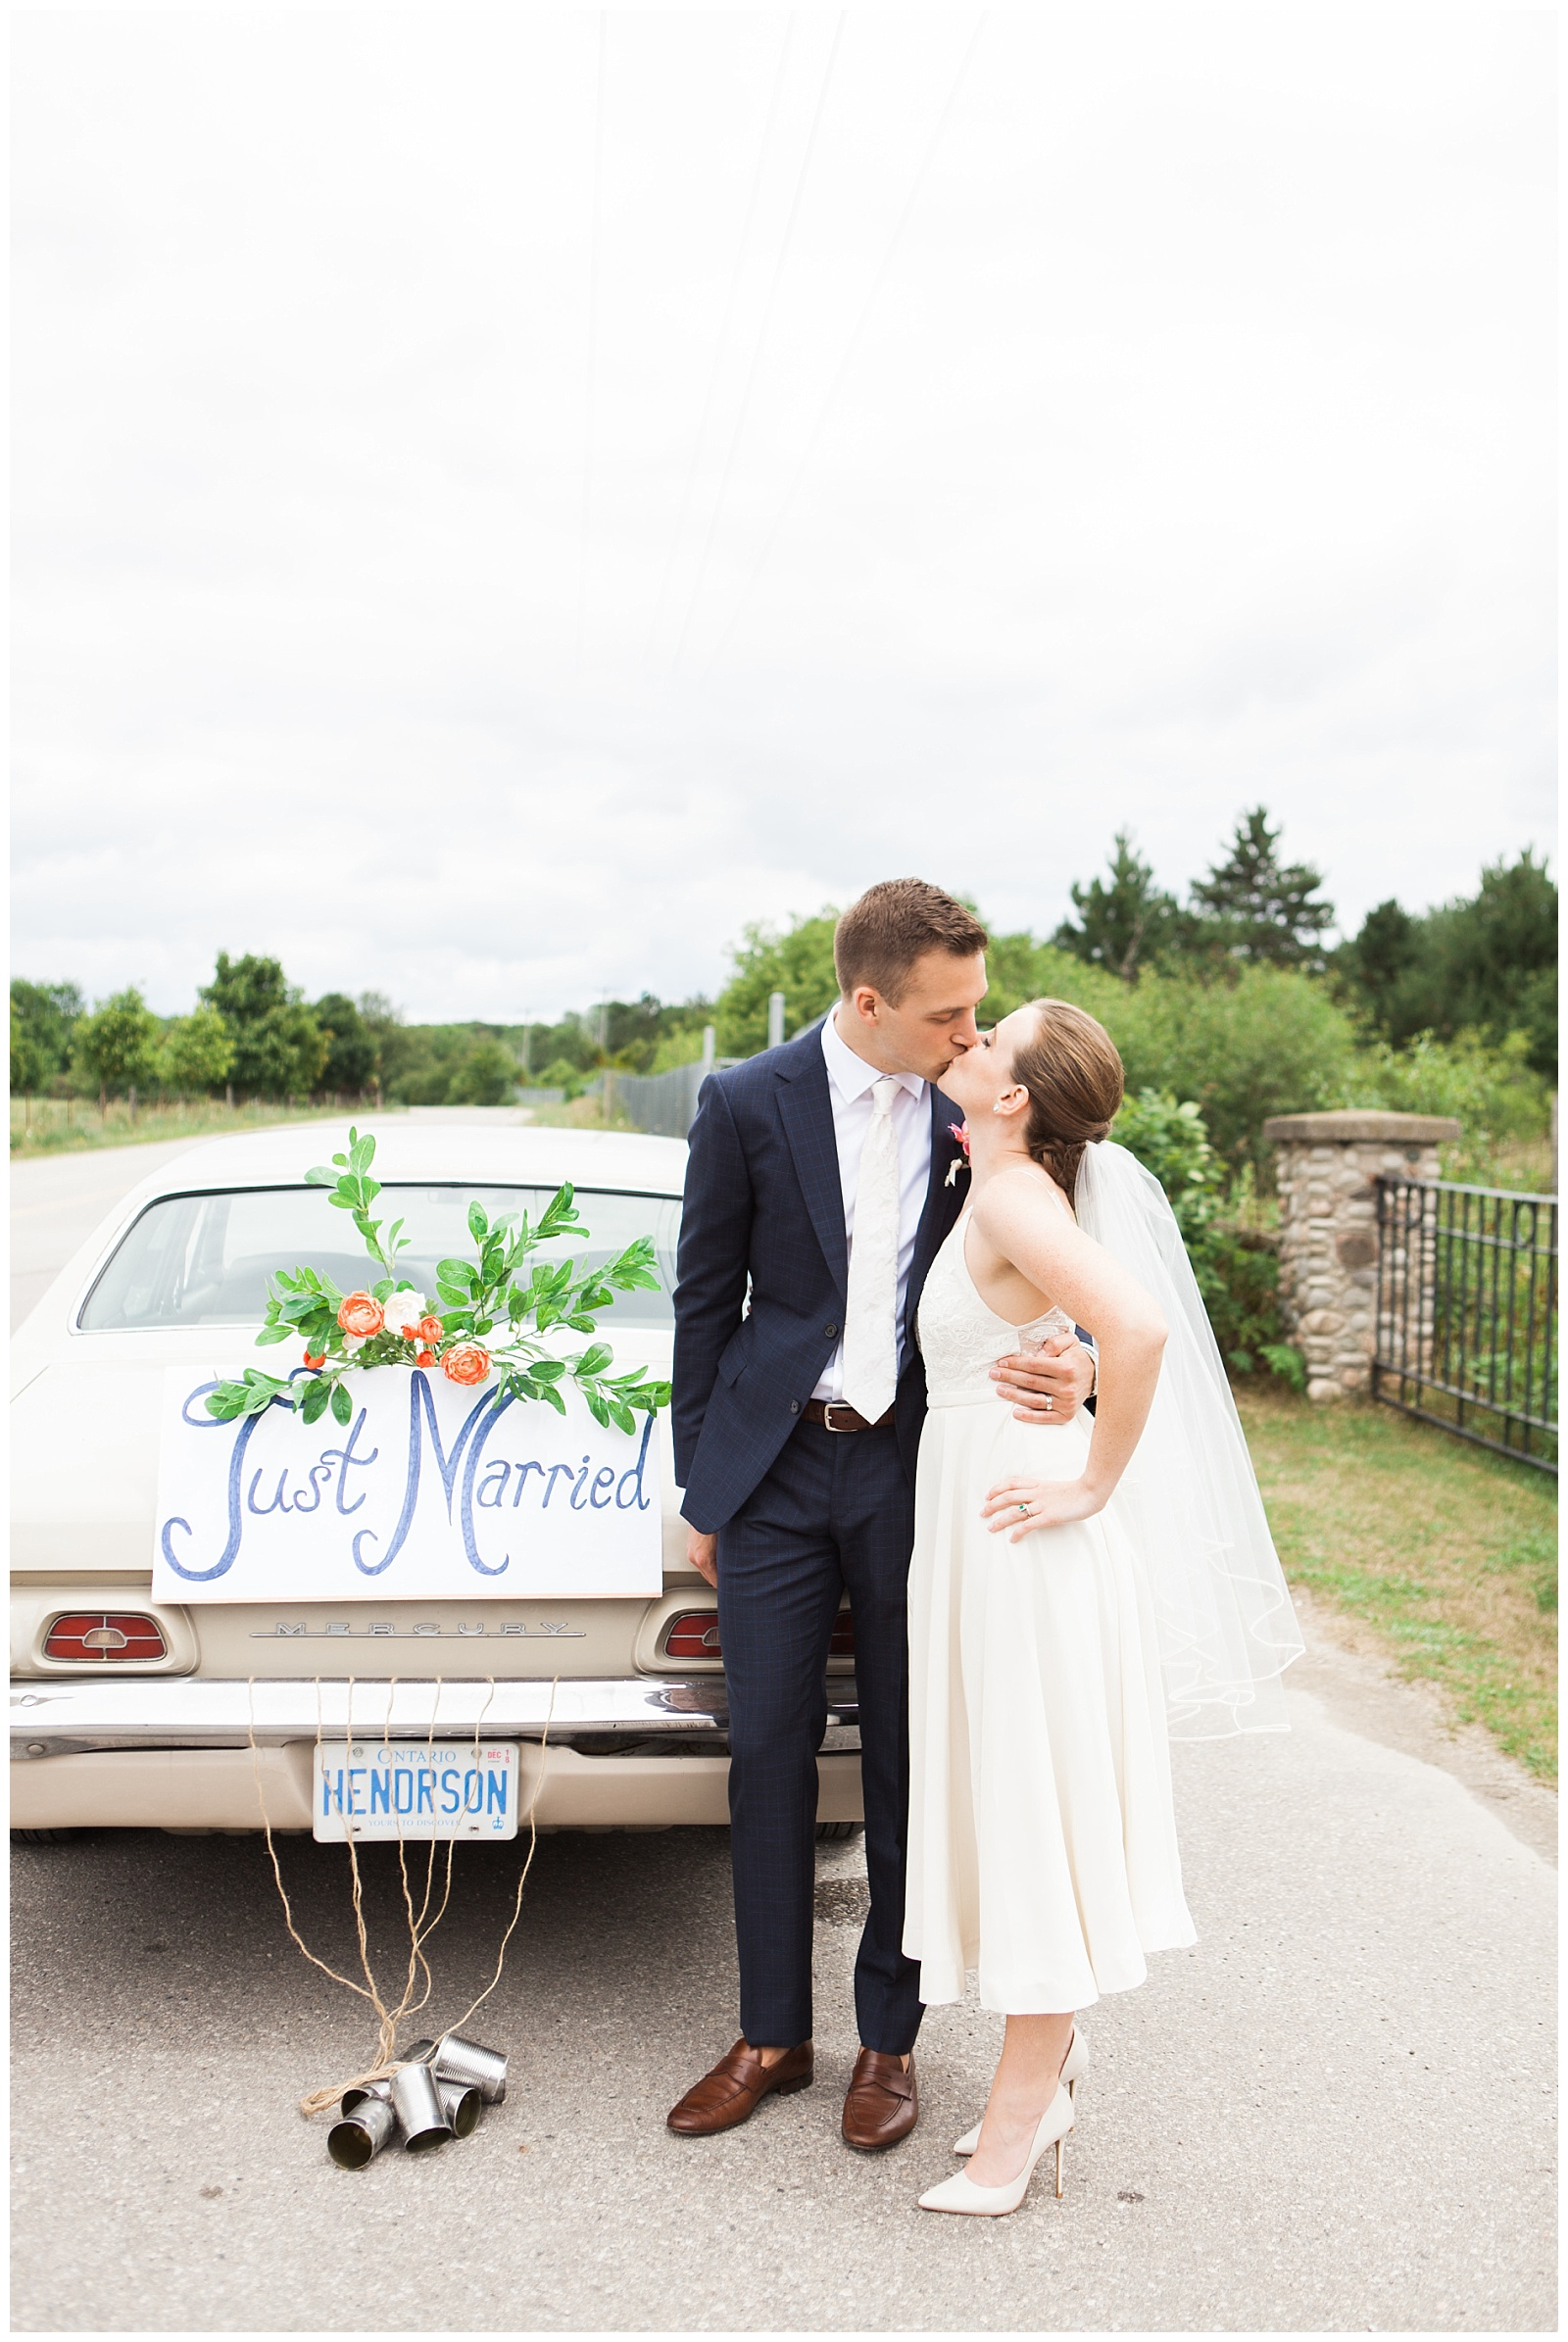 Bride and groom kissing in front of just married getaway car at Guelph Ontario Wedding | Ontario Wedding Photographer | Toronto Wedding Photographer | 3photography